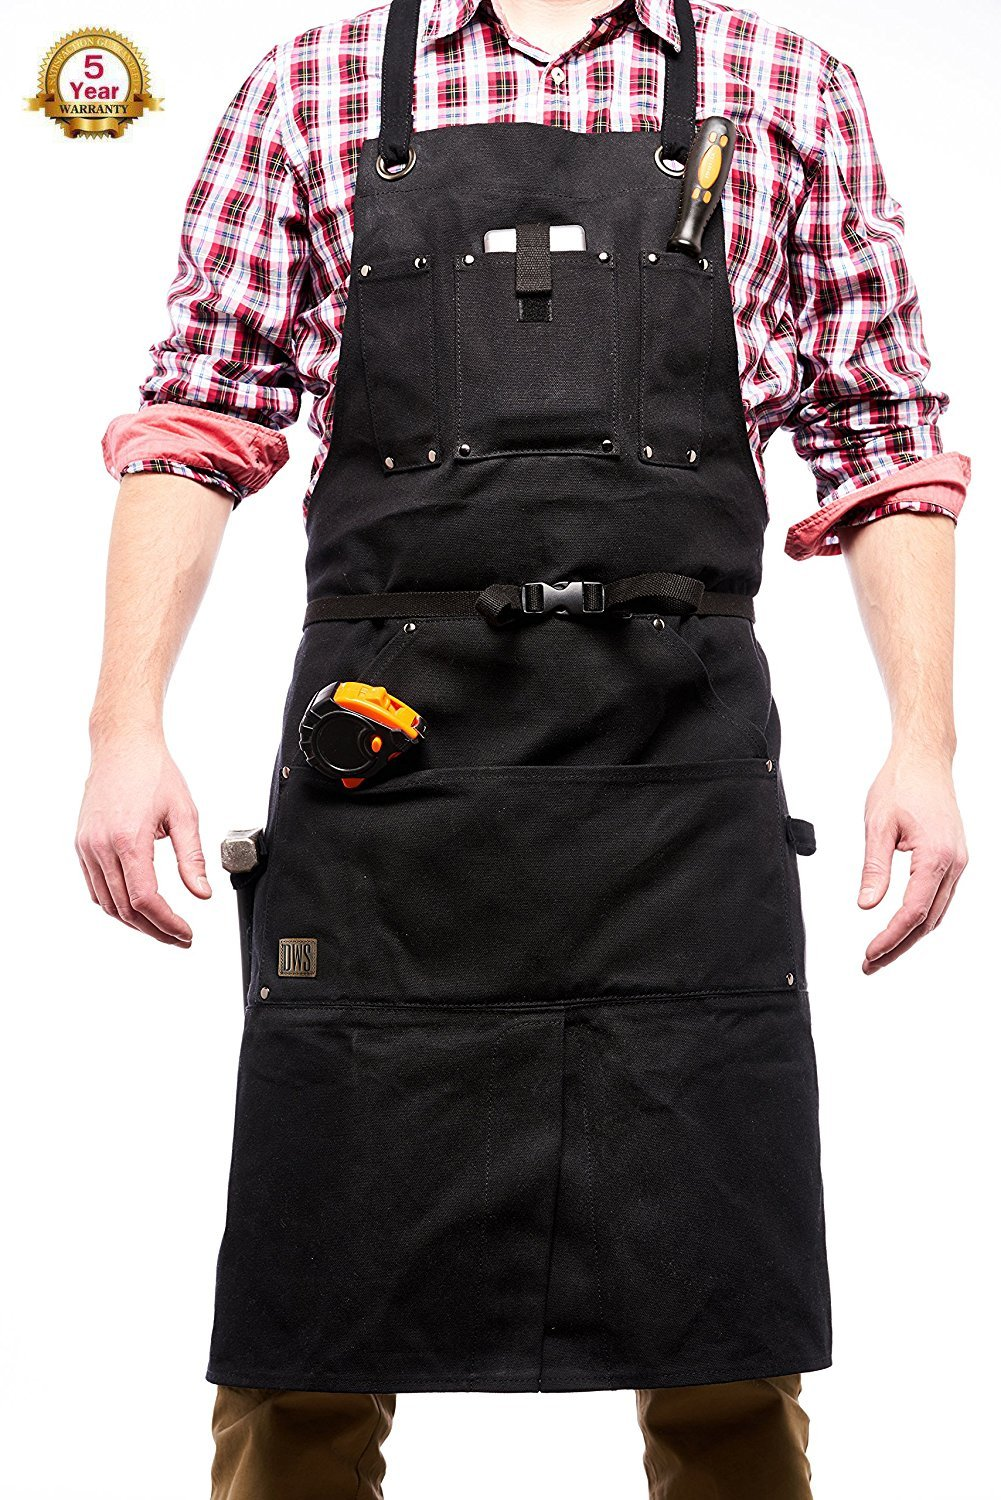 DWS Premium Waxed Canvas Apron with Lots of Additional Pockets & Roomy Pouches. Water Resistant, with 2 Hammer Loops, Quick Release Buckle, Adjustable up to XXL. for Carpenter, Machinist, Home